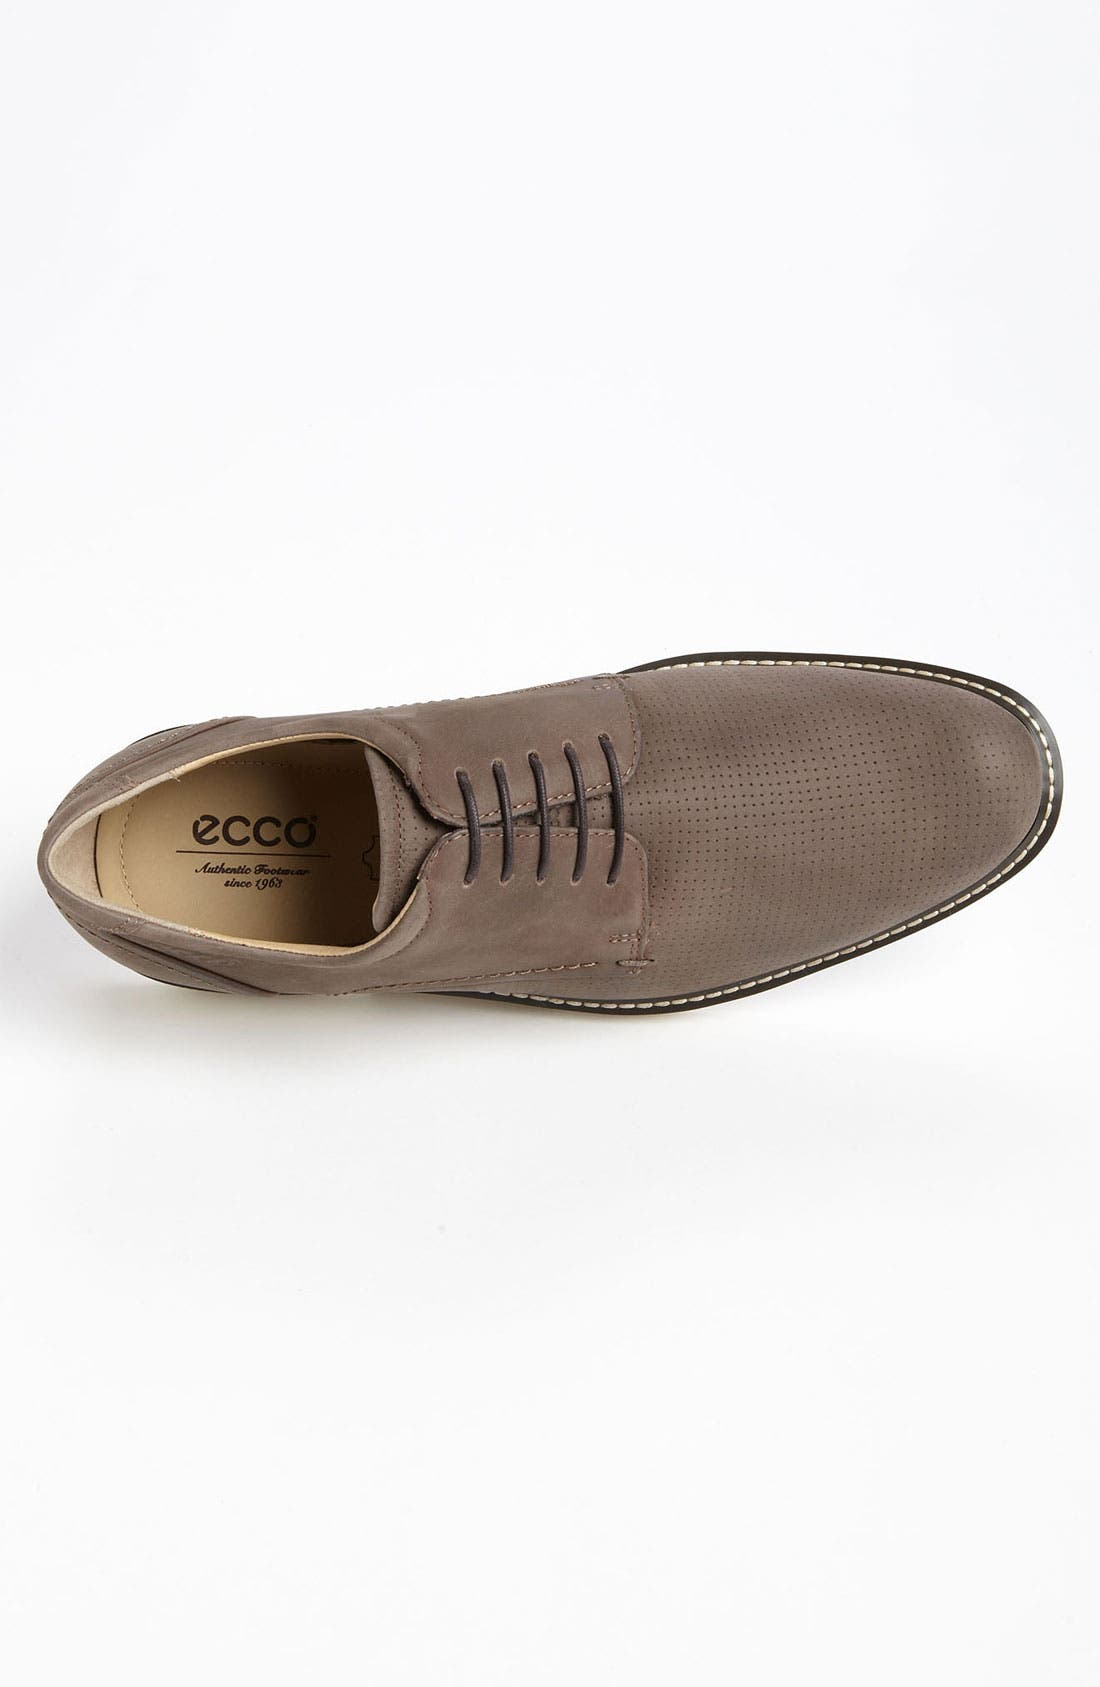 Alternate Image 3  - ECCO 'Biarritz' Perforated Oxford